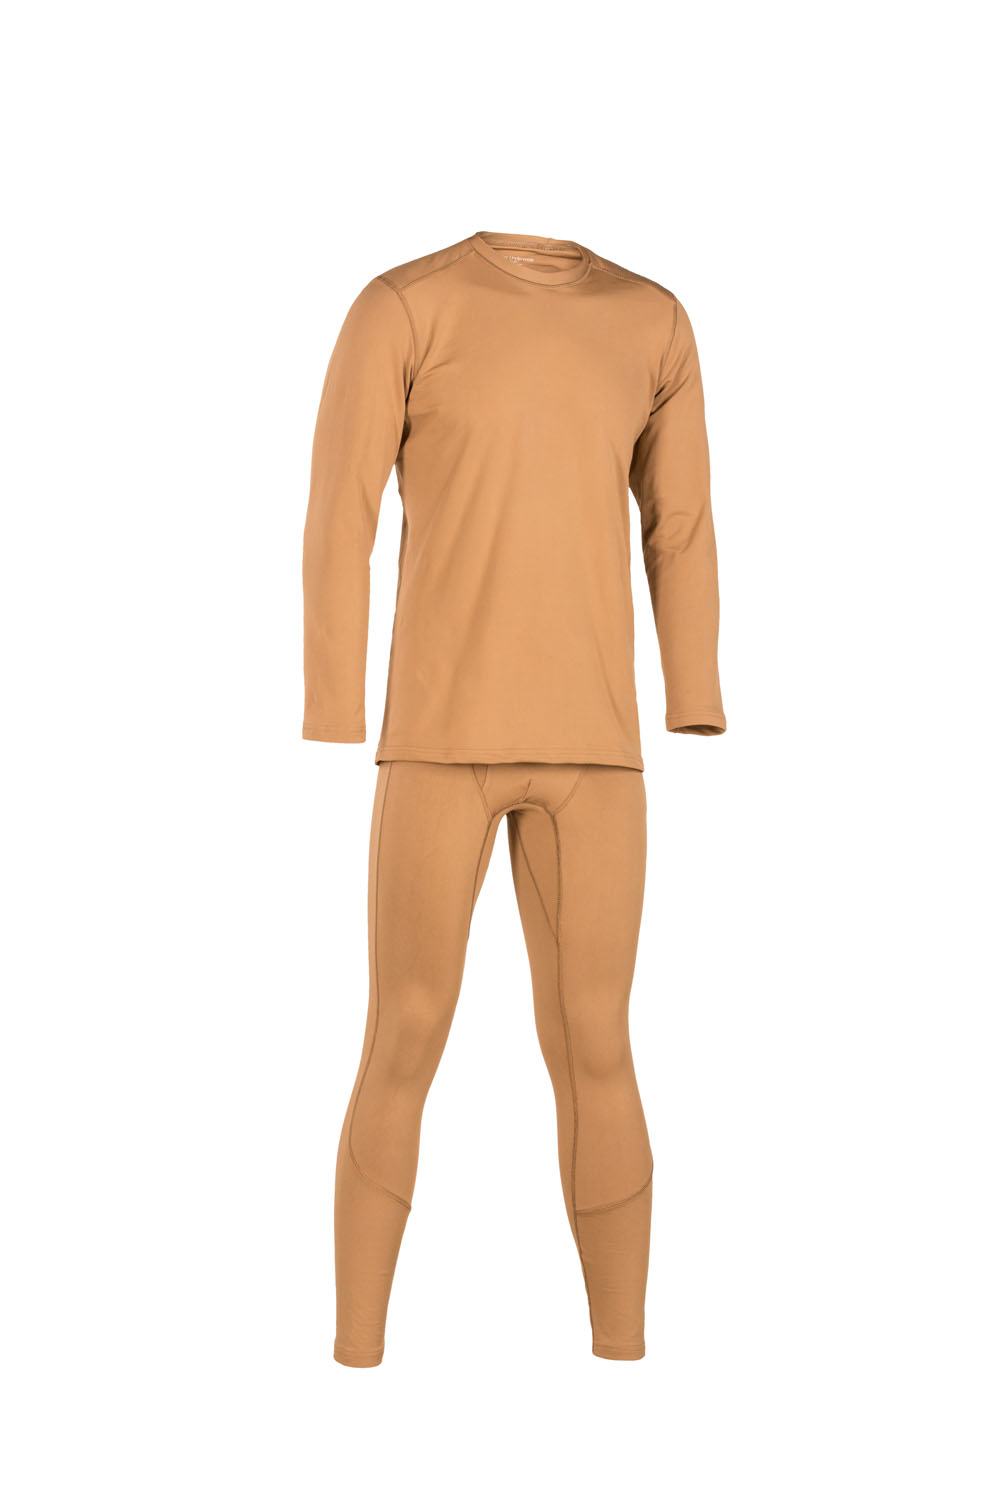 Membrane thermal underwear